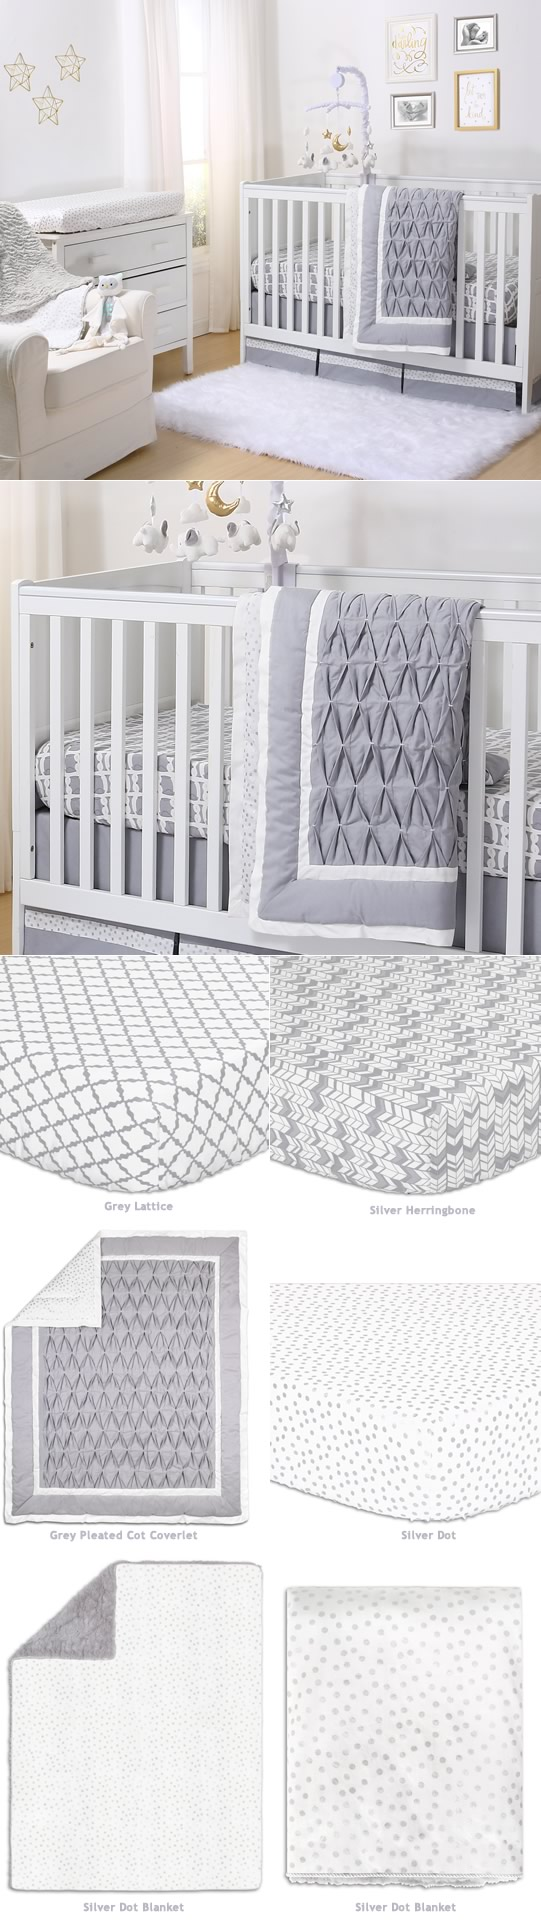 Grey Pleated Cot Bedding